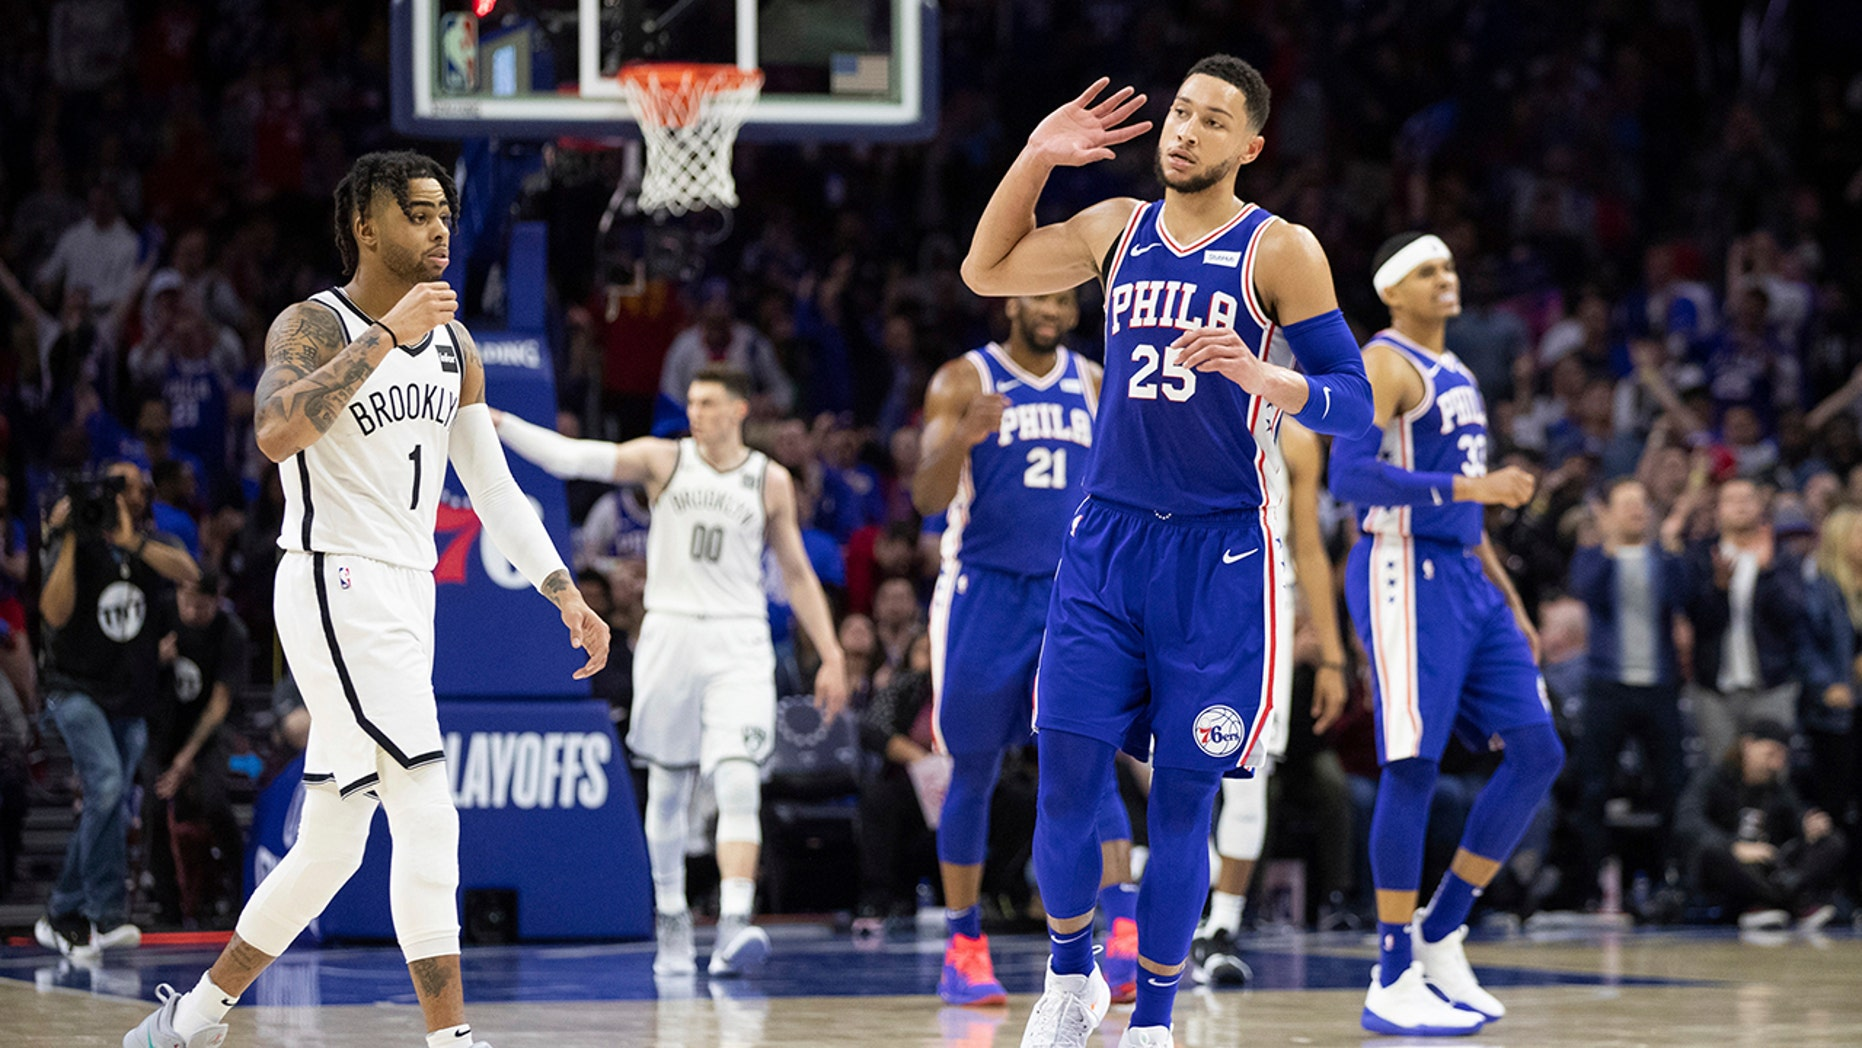 Philadelphia 76ers' Ben Simmons, right, of Australia, cups his hand to his ear after getting the ball from Brooklyn Nets' D'Angelo Russell, left, during the second half in Game 2 of a first-round NBA basketball playoff series, Monday, April 15, 2019, in Philadelphia. (AP Photo/Chris Szagola)